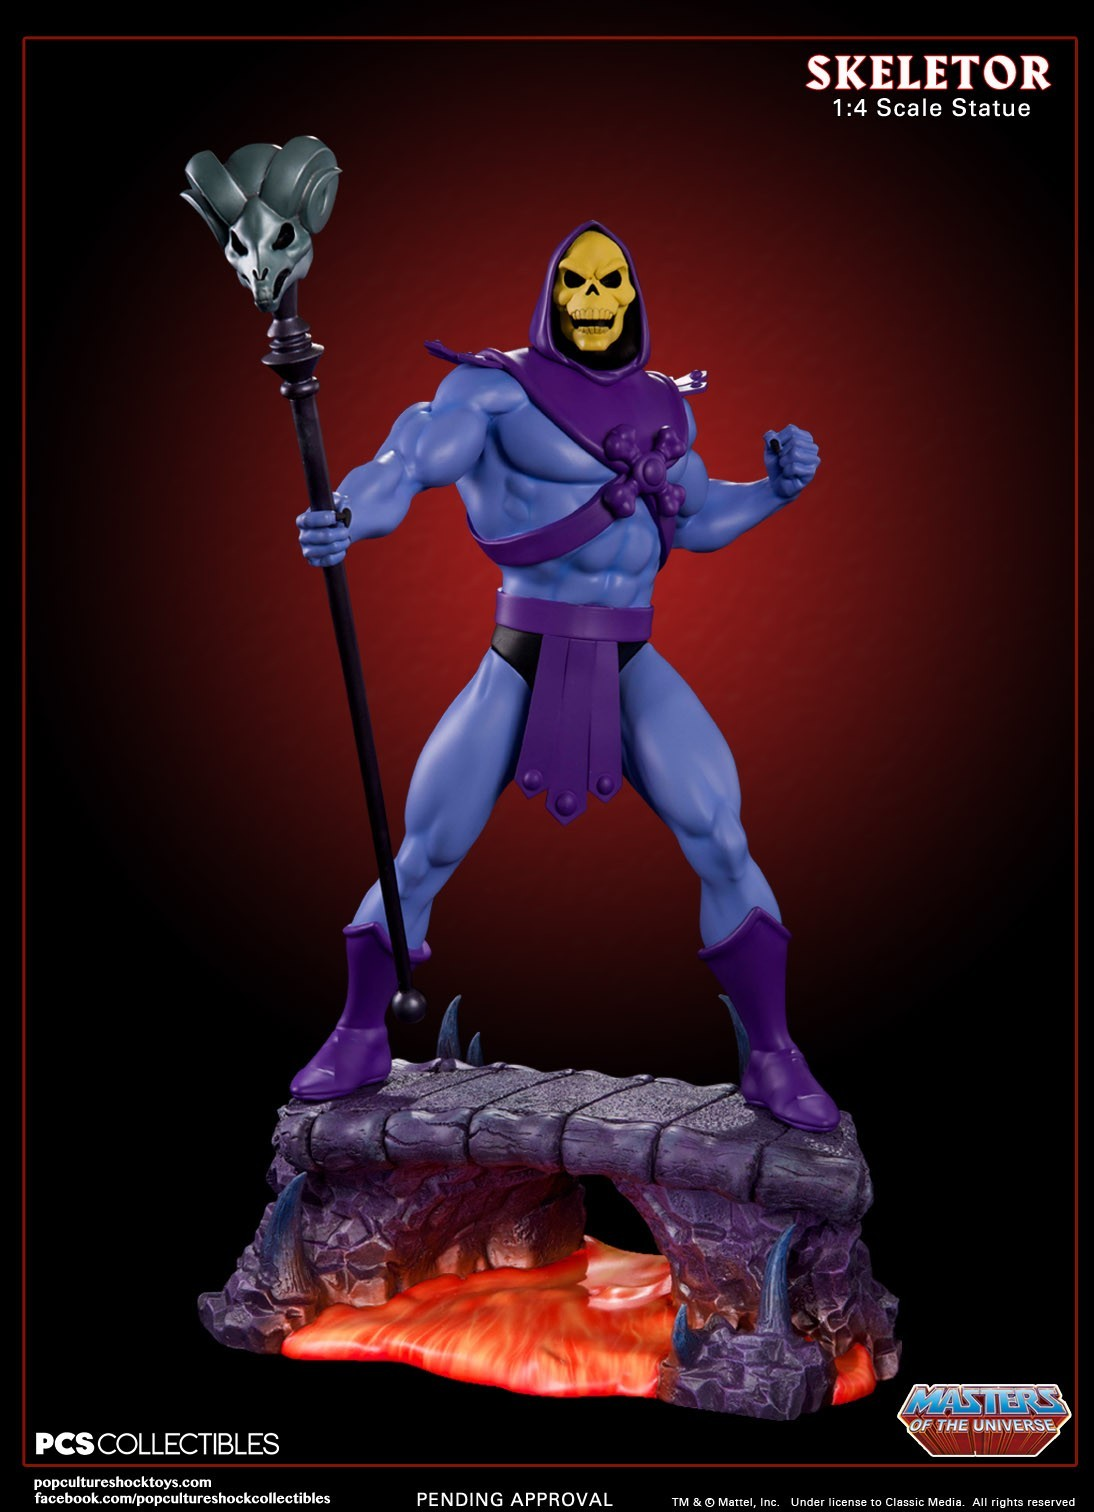 Alejandro pereira skeletor media b 1